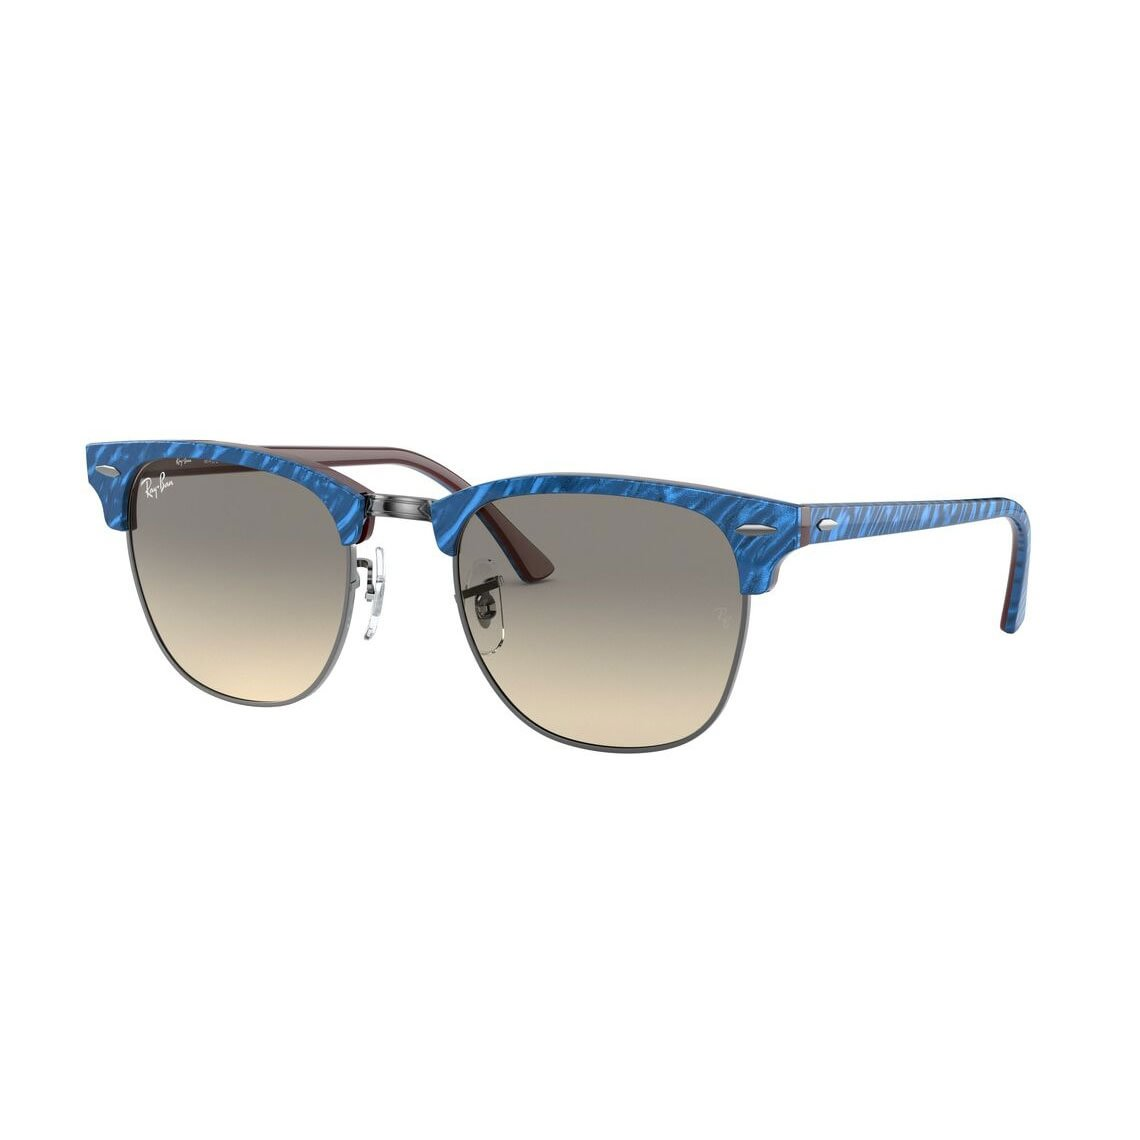 Ray-Ban Clubmaster Marble RB3016 131032 51